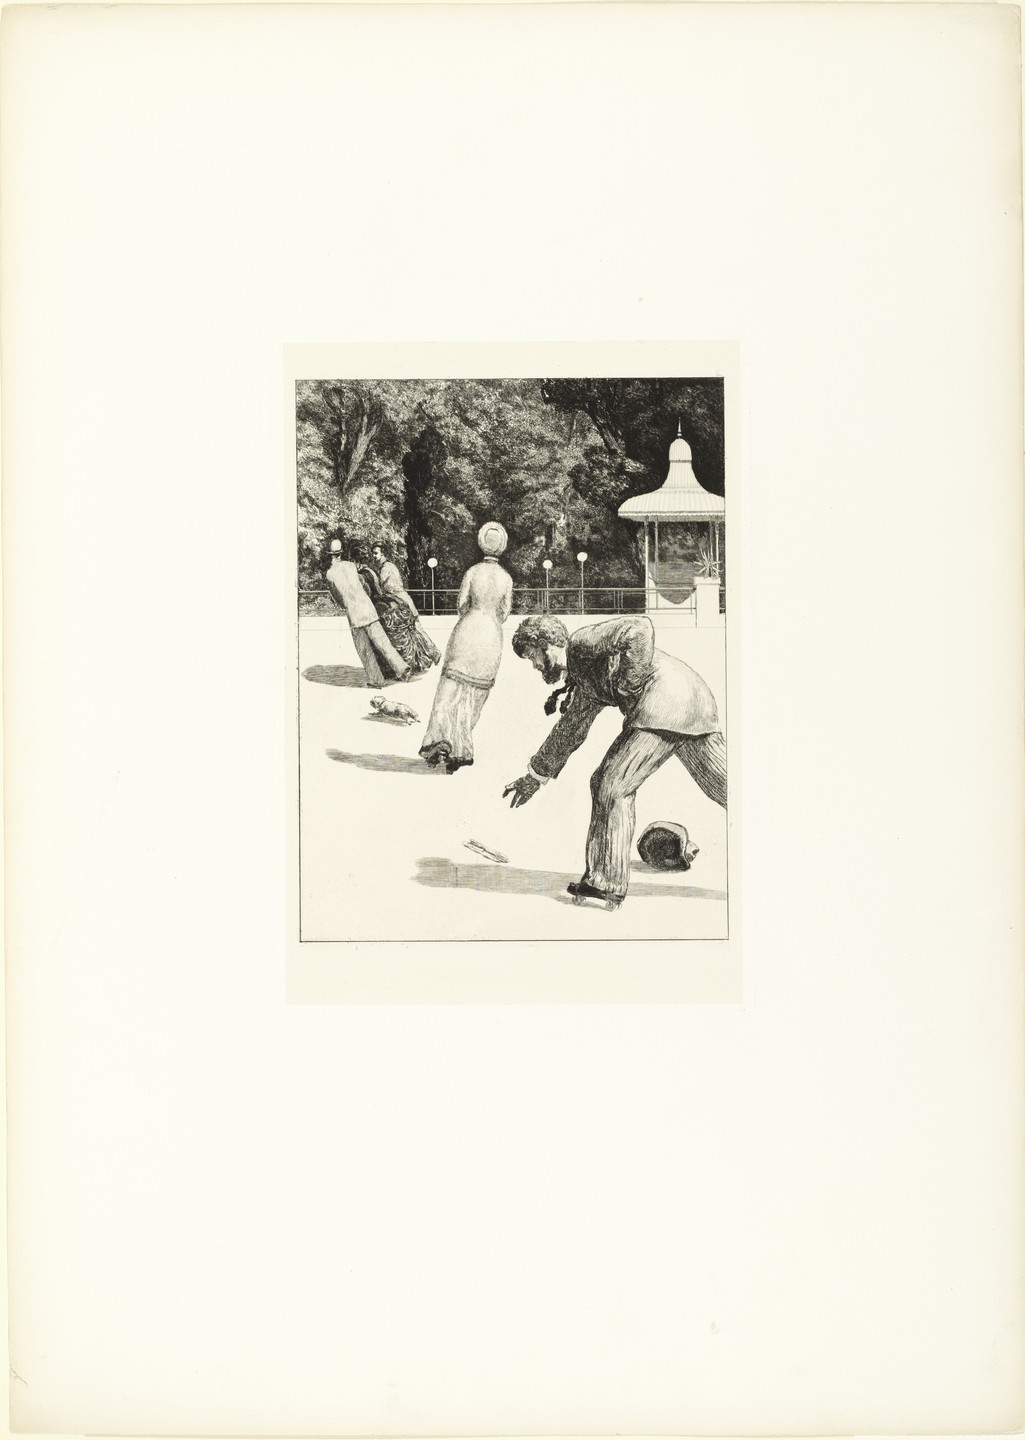 Max Klinger. Action (Handlung) (plate II) from A Glove, Opus VI (Ein Handschuh, Opus VI). 1881 (print executed 1880)